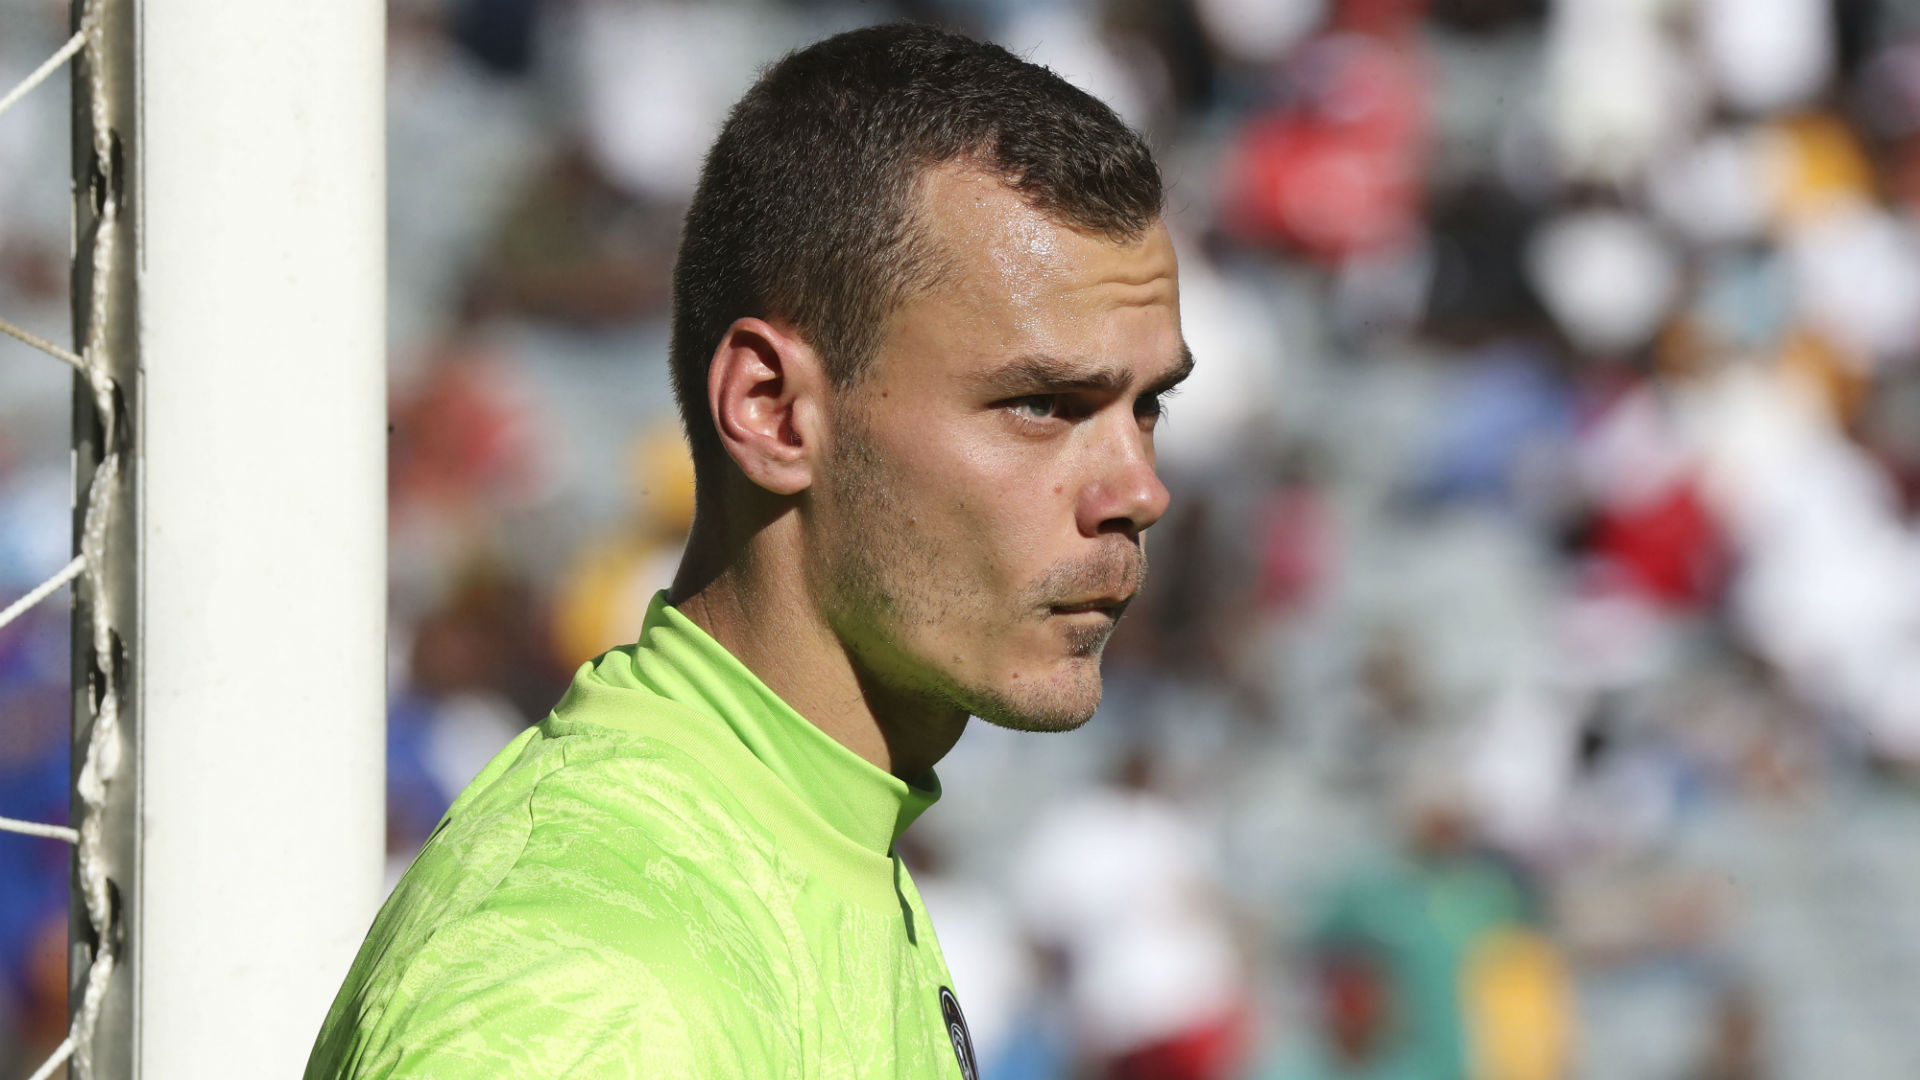 Joris Delle of Orlando Pirates, September 2019